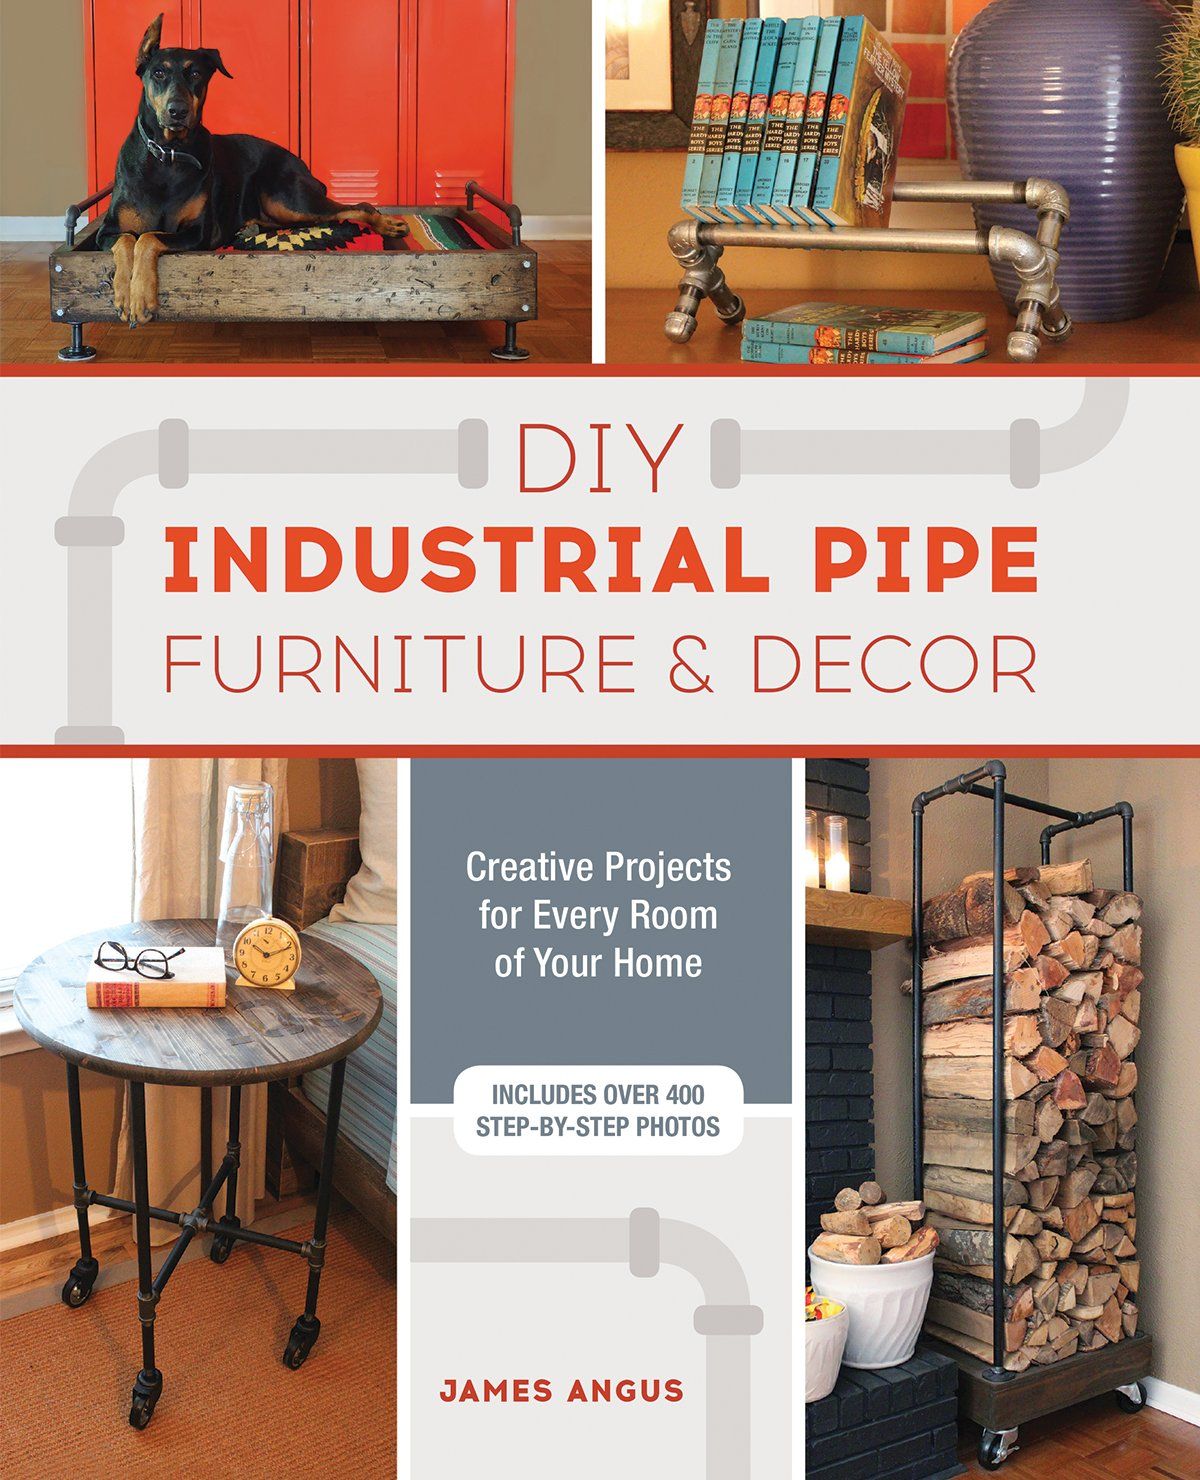 Industrial Pipe Furniture Inside Diy Industrial Pipe Furniture And Decor Creative Projects For Every Room Of Your Home James Angus 9781612436067 Amazoncom Books